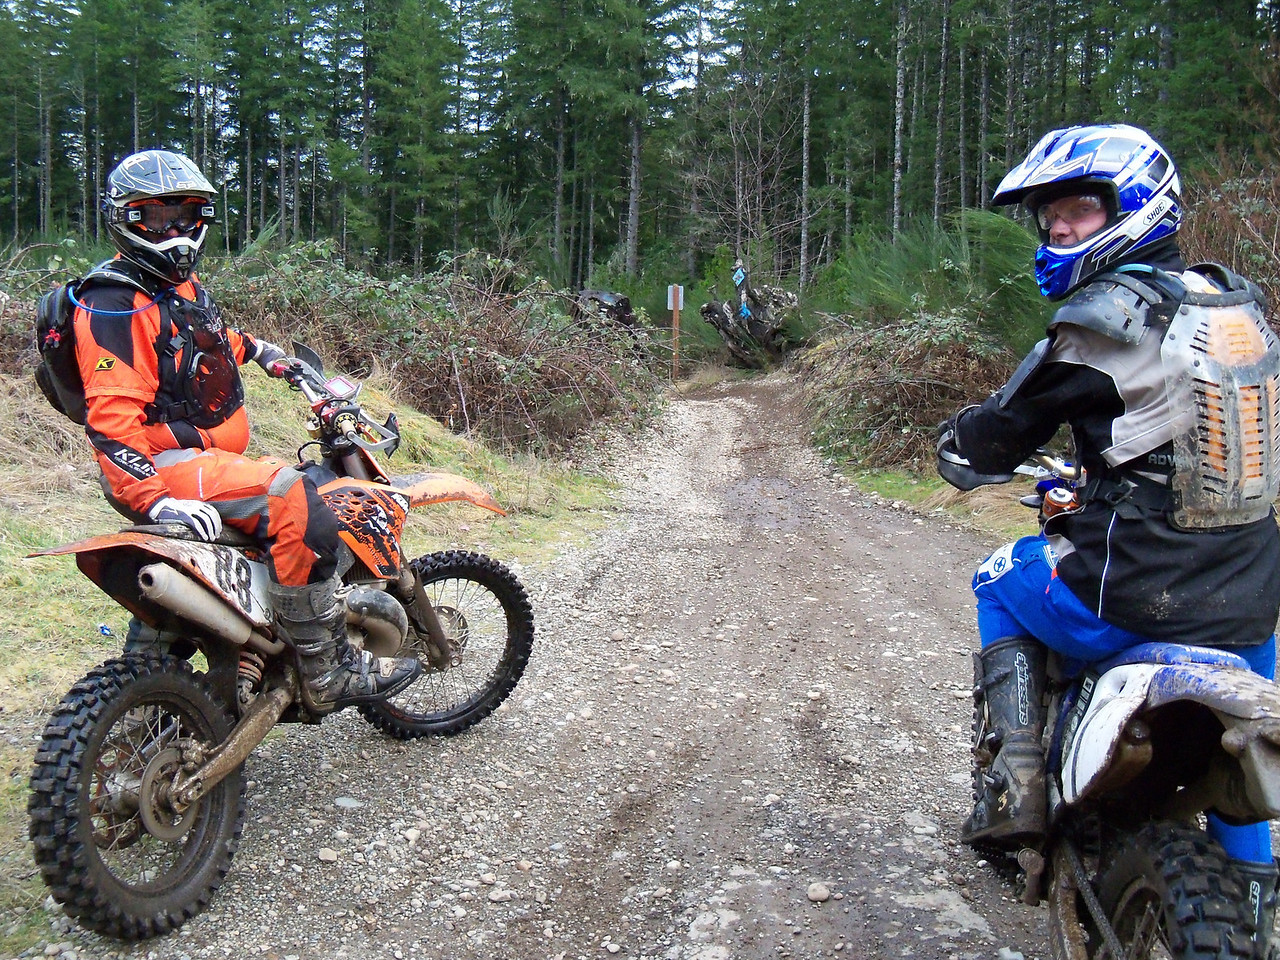 Justin and Garrett at the Start of the ISDE course